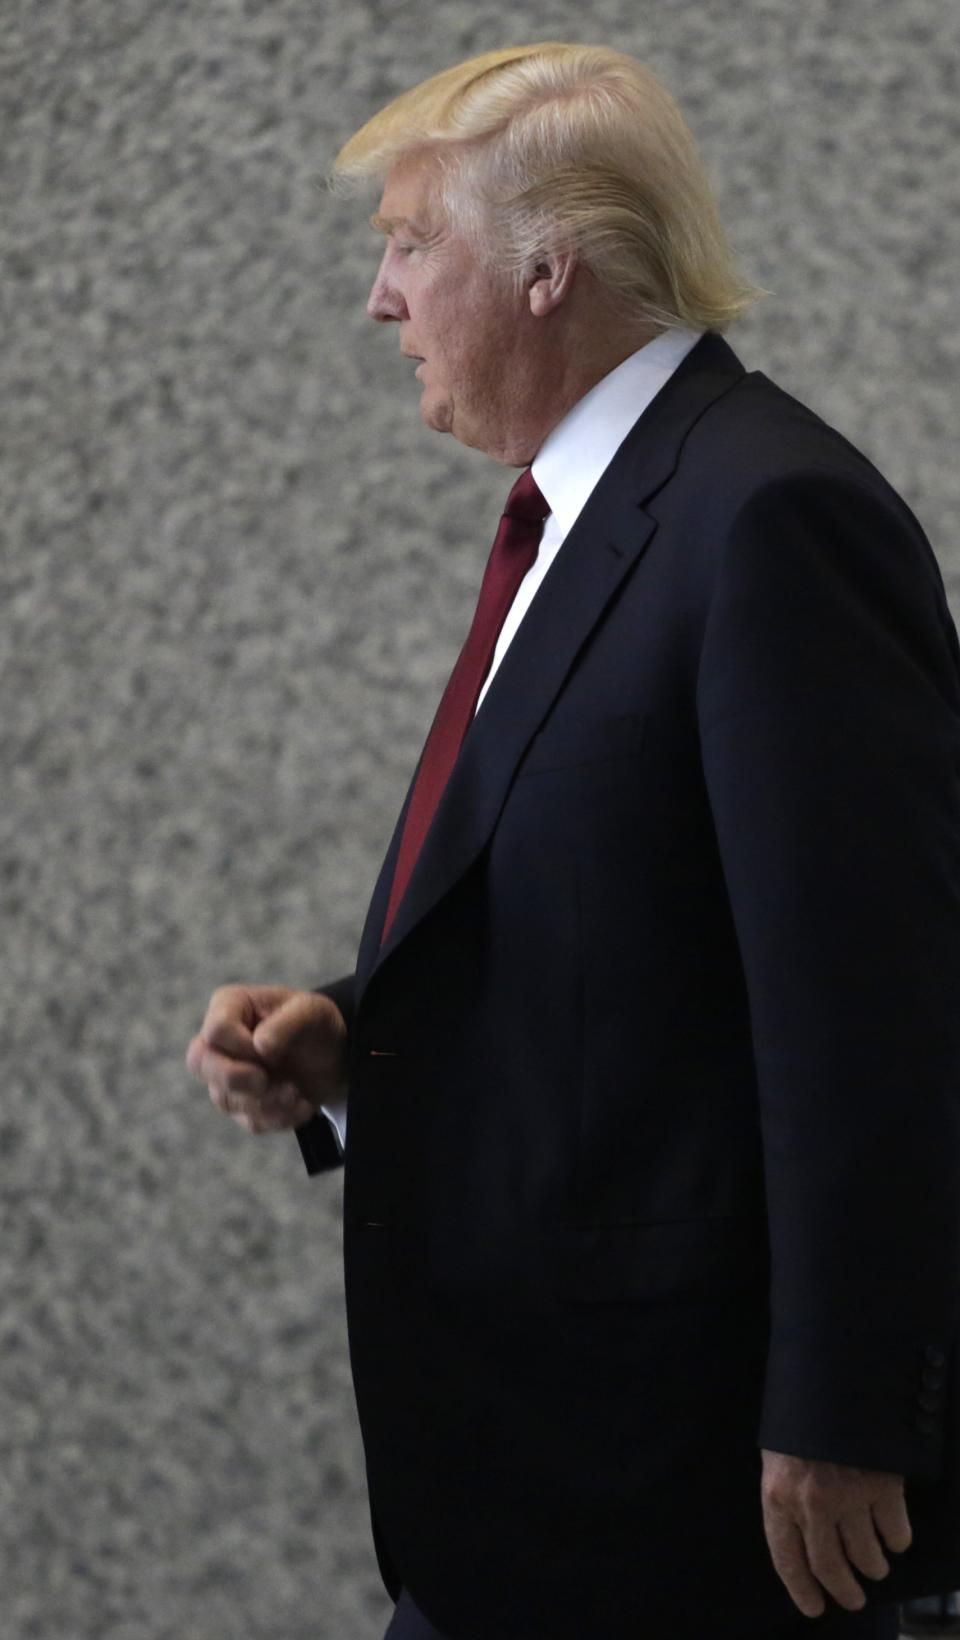 Donald Trump arrives at federal court Tuesday, May 14, 2013, in Chicago. Trump is set to testify at a civil trial where he's accused of enticing investors to buy condos at his Chicago skyscraper with promises of profit-sharing, then quietly reneging on them. (AP Photo/M. Spencer Green)